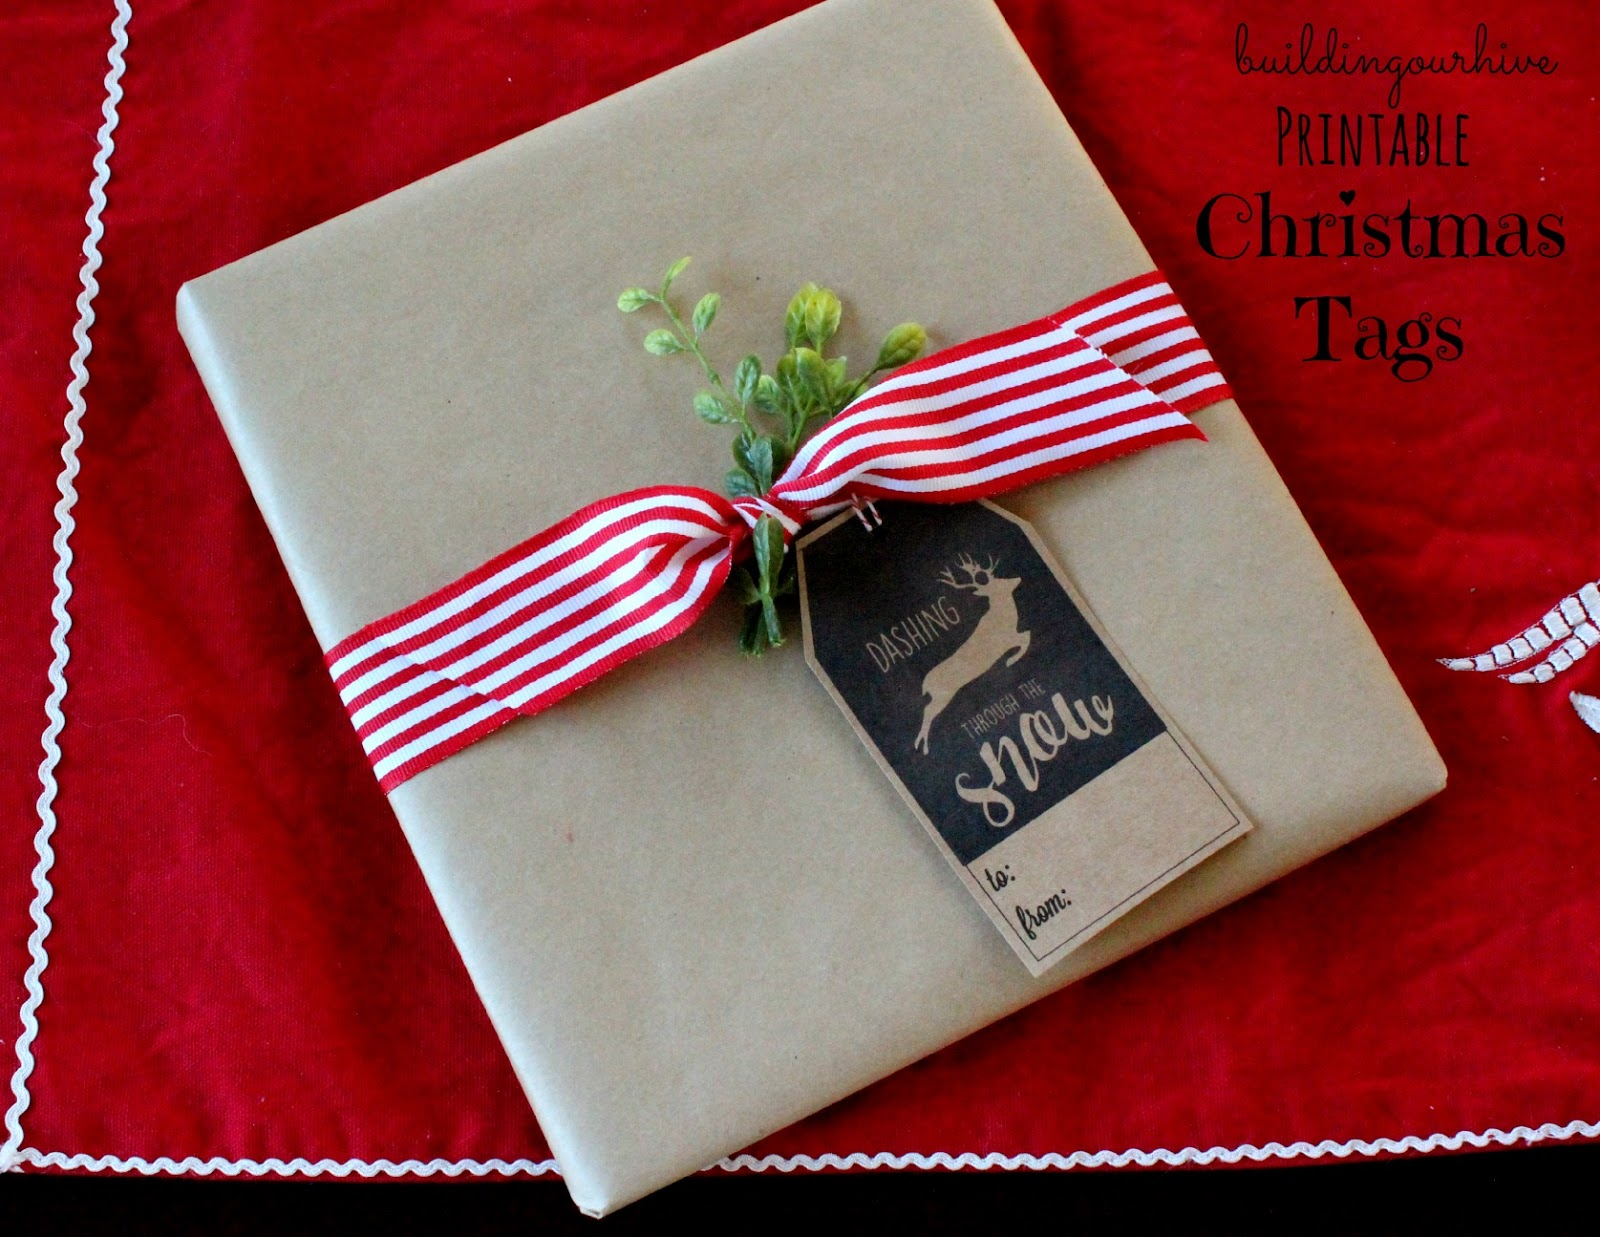 Christmas Tags: Building Our Hive: Printable Christmas Tags And Gift Wrapping